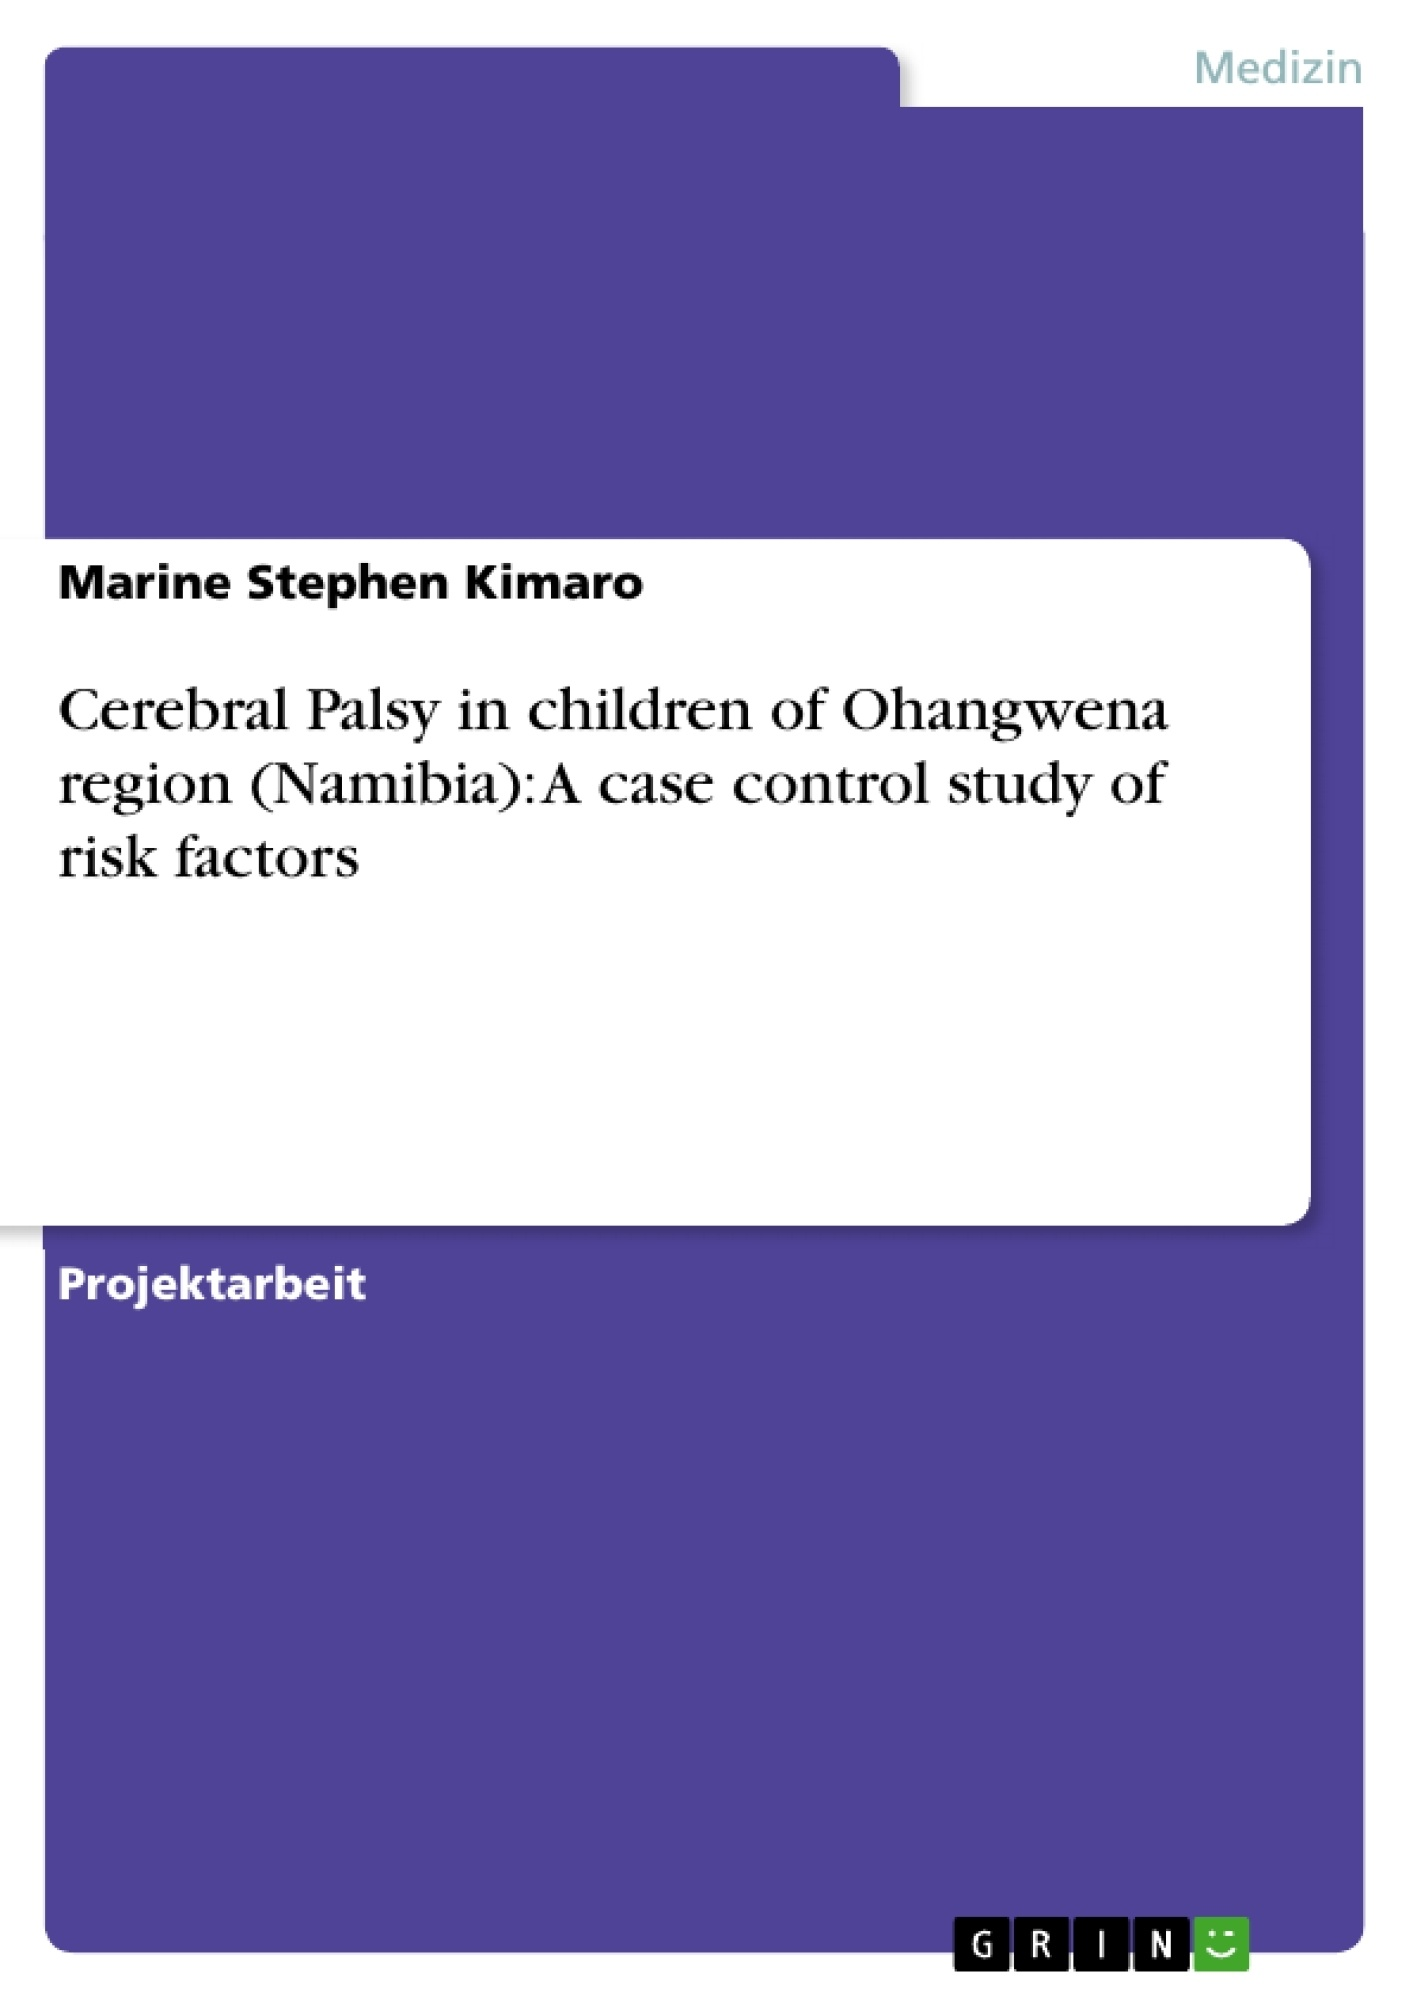 Titel: Cerebral Palsy in children of Ohangwena region (Namibia): A case control study of risk factors